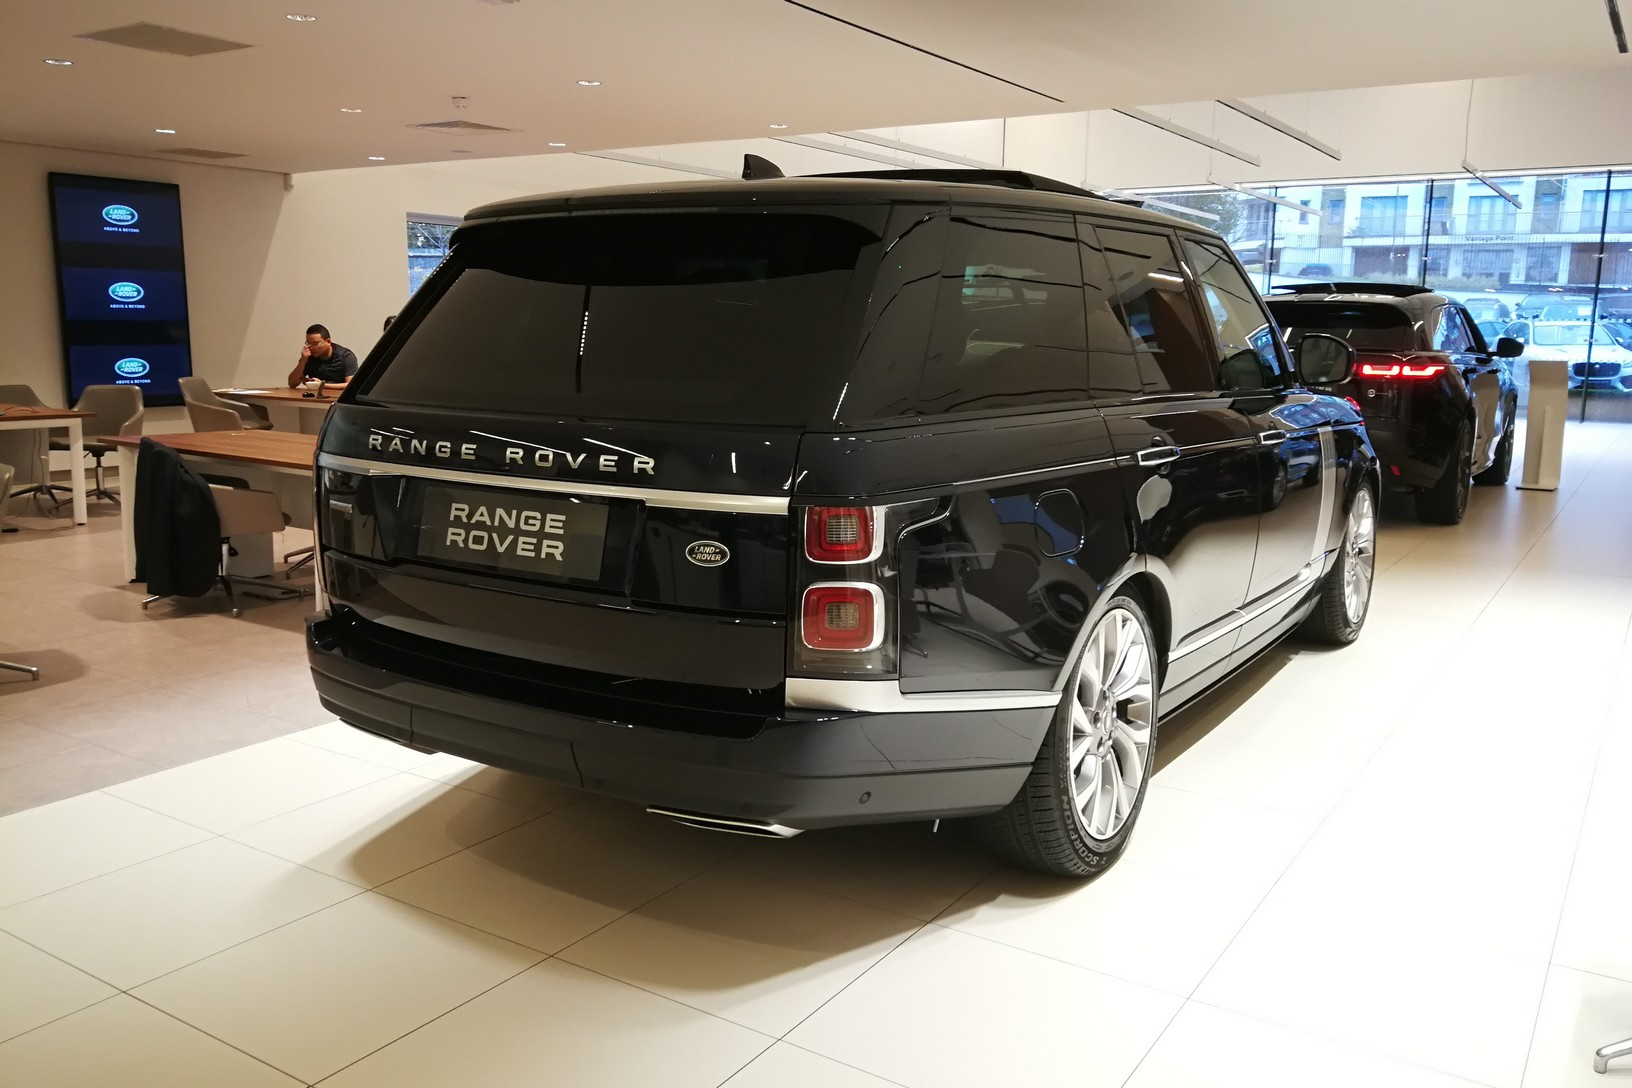 Land Rover Range Rover 4.4 SDV8biography image 6